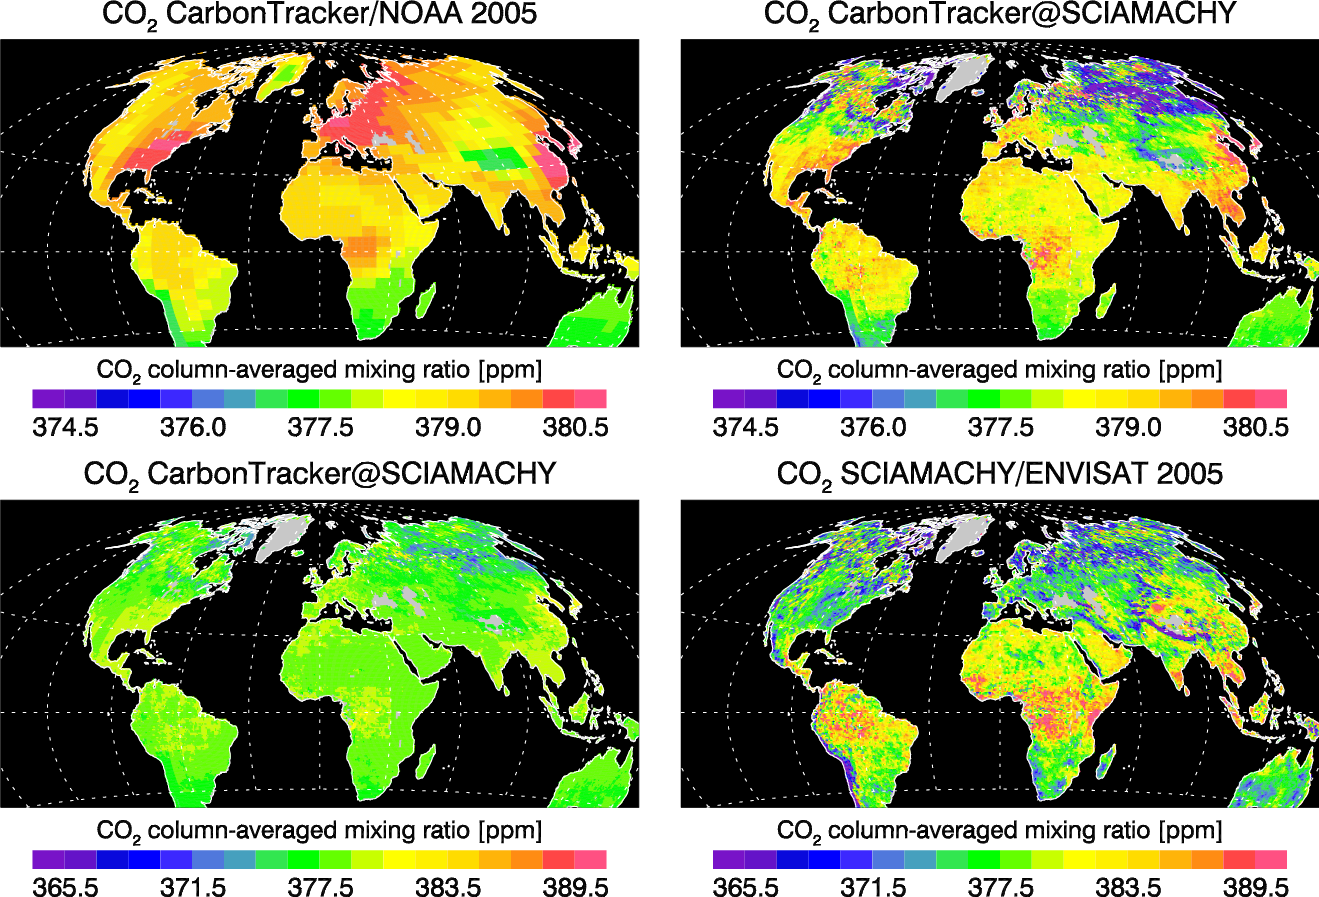 XCO2: CarbonTracker (NOAA) and SCIAMACHY (WFM-DOAS version 1.0)